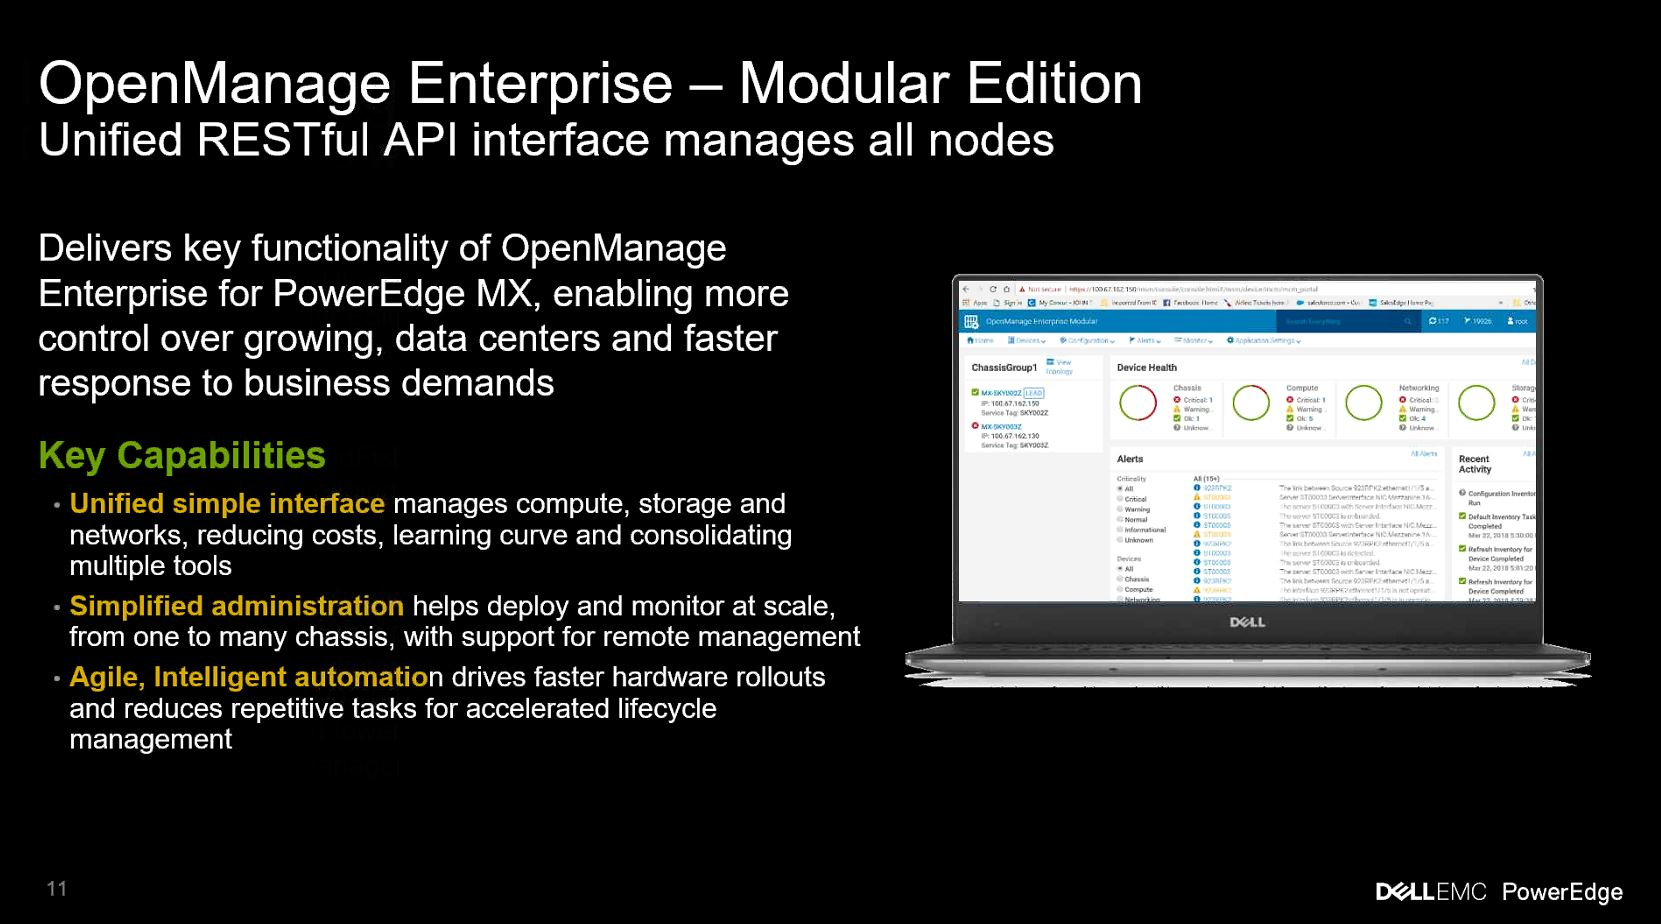 Dell EMC PowerEdge MX Open Manage Enterprise Modular Edition